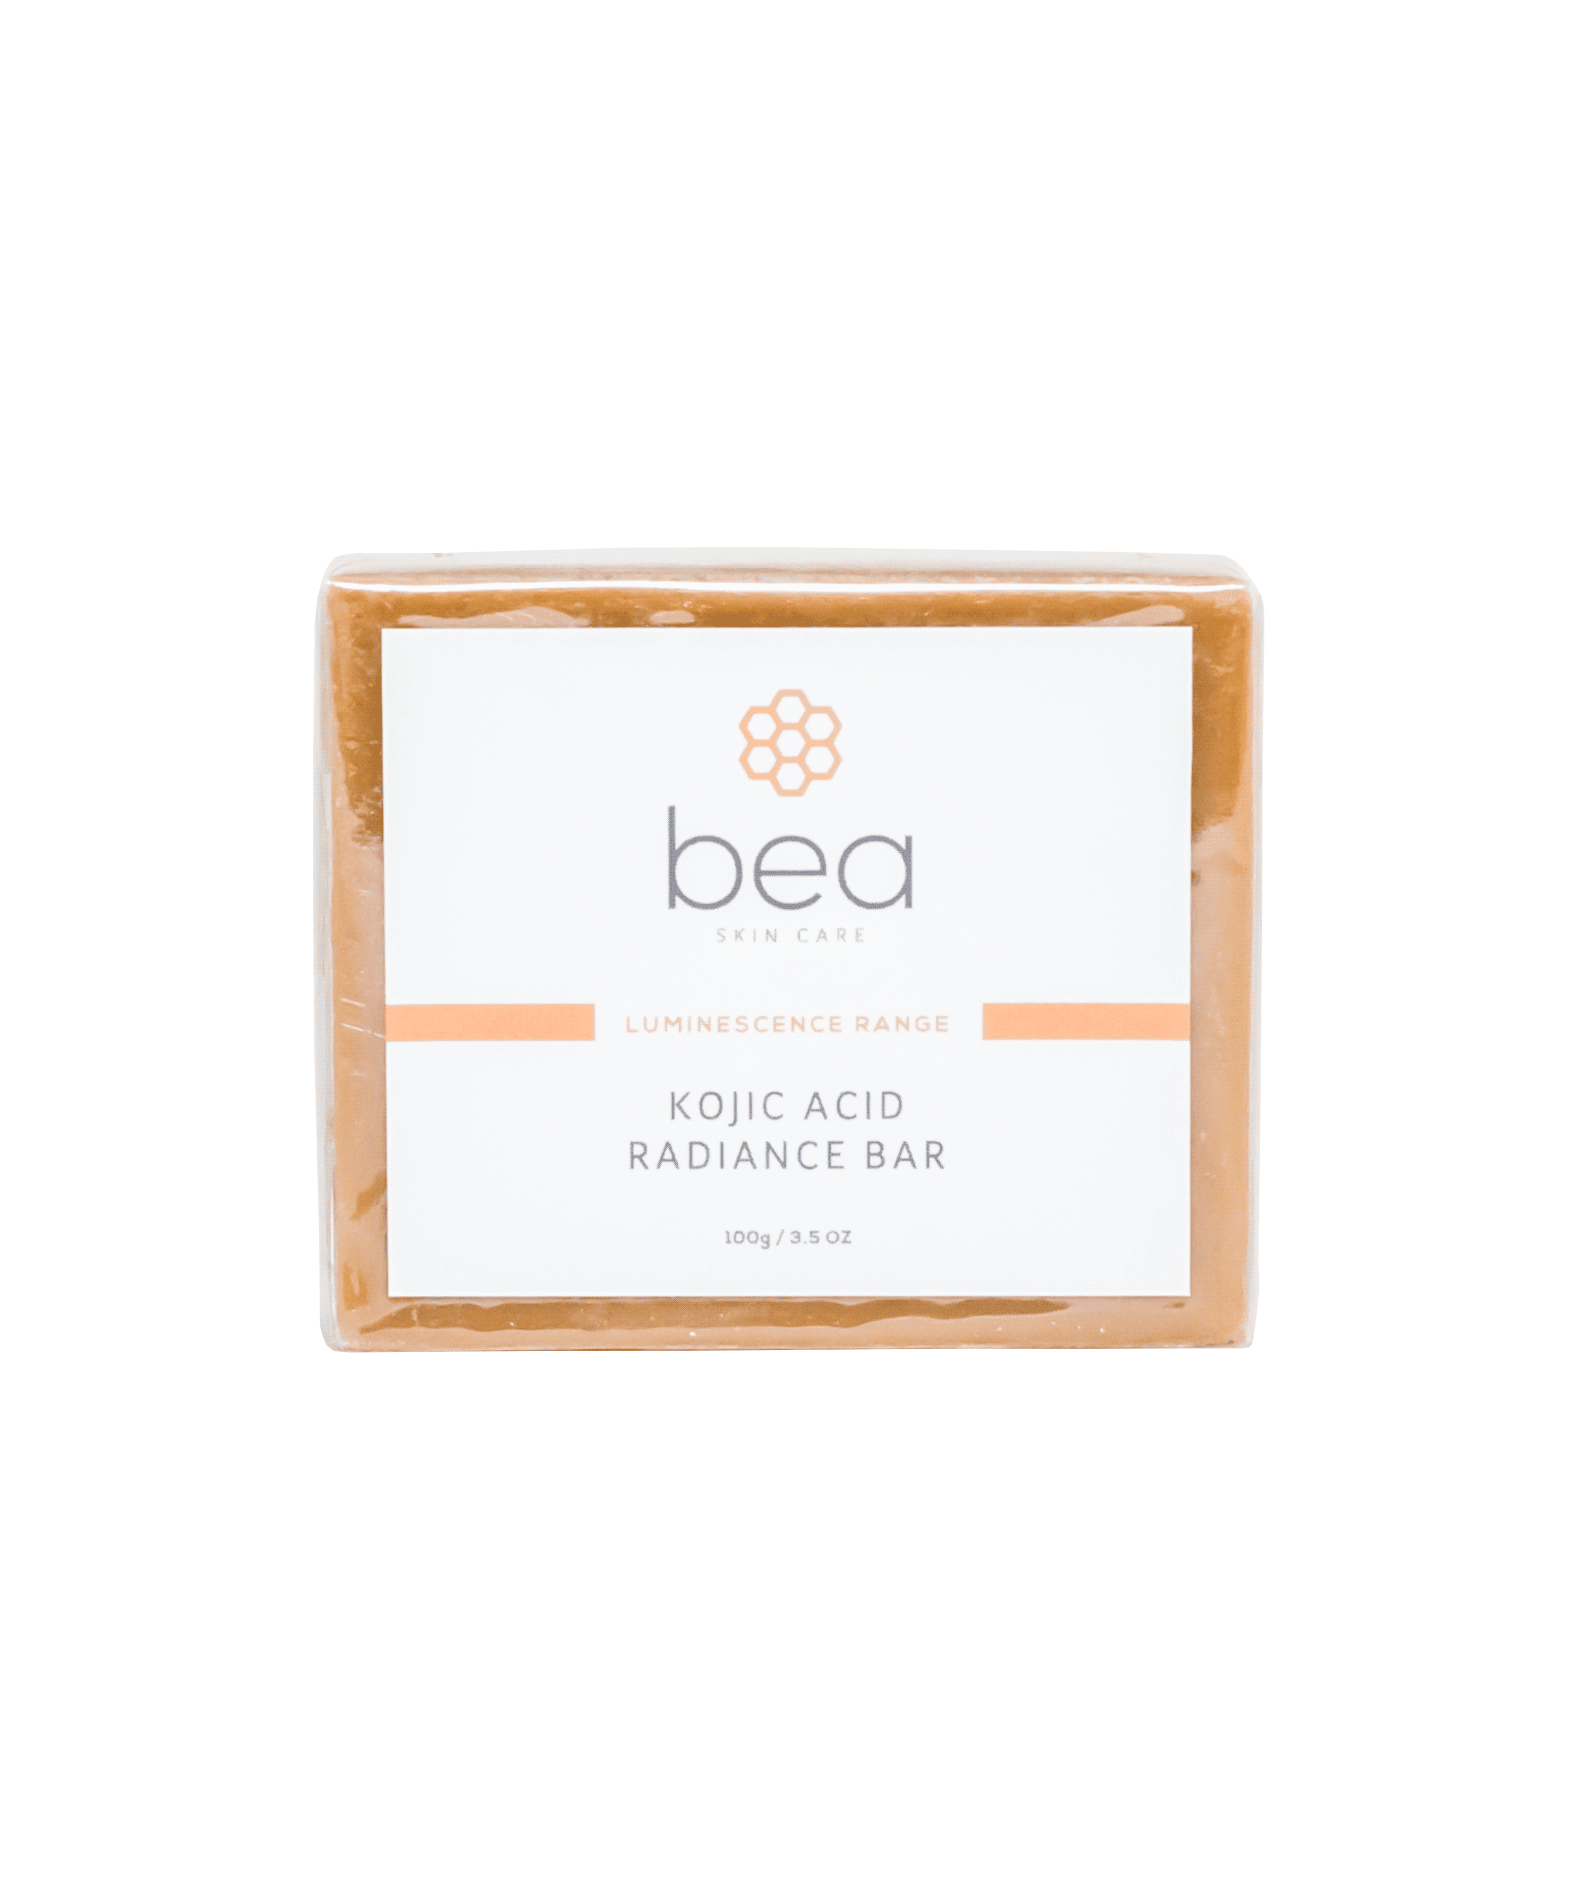 Kojic Acid Radiance Bar - 100 g Wash Bar bea Skin Care